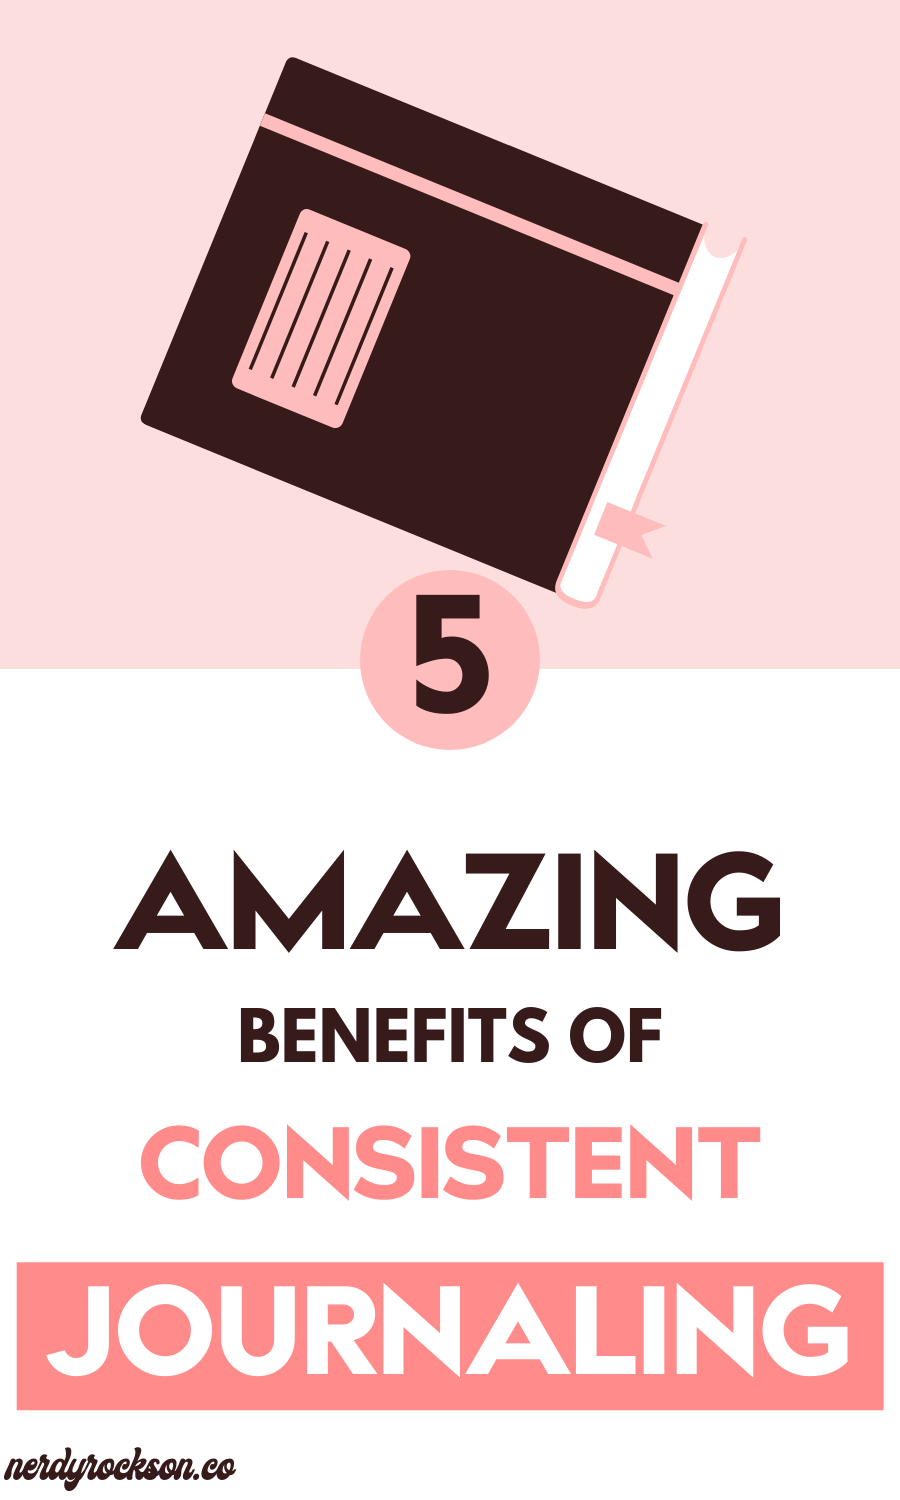 Top 5 Amazing Benefits of Journaling